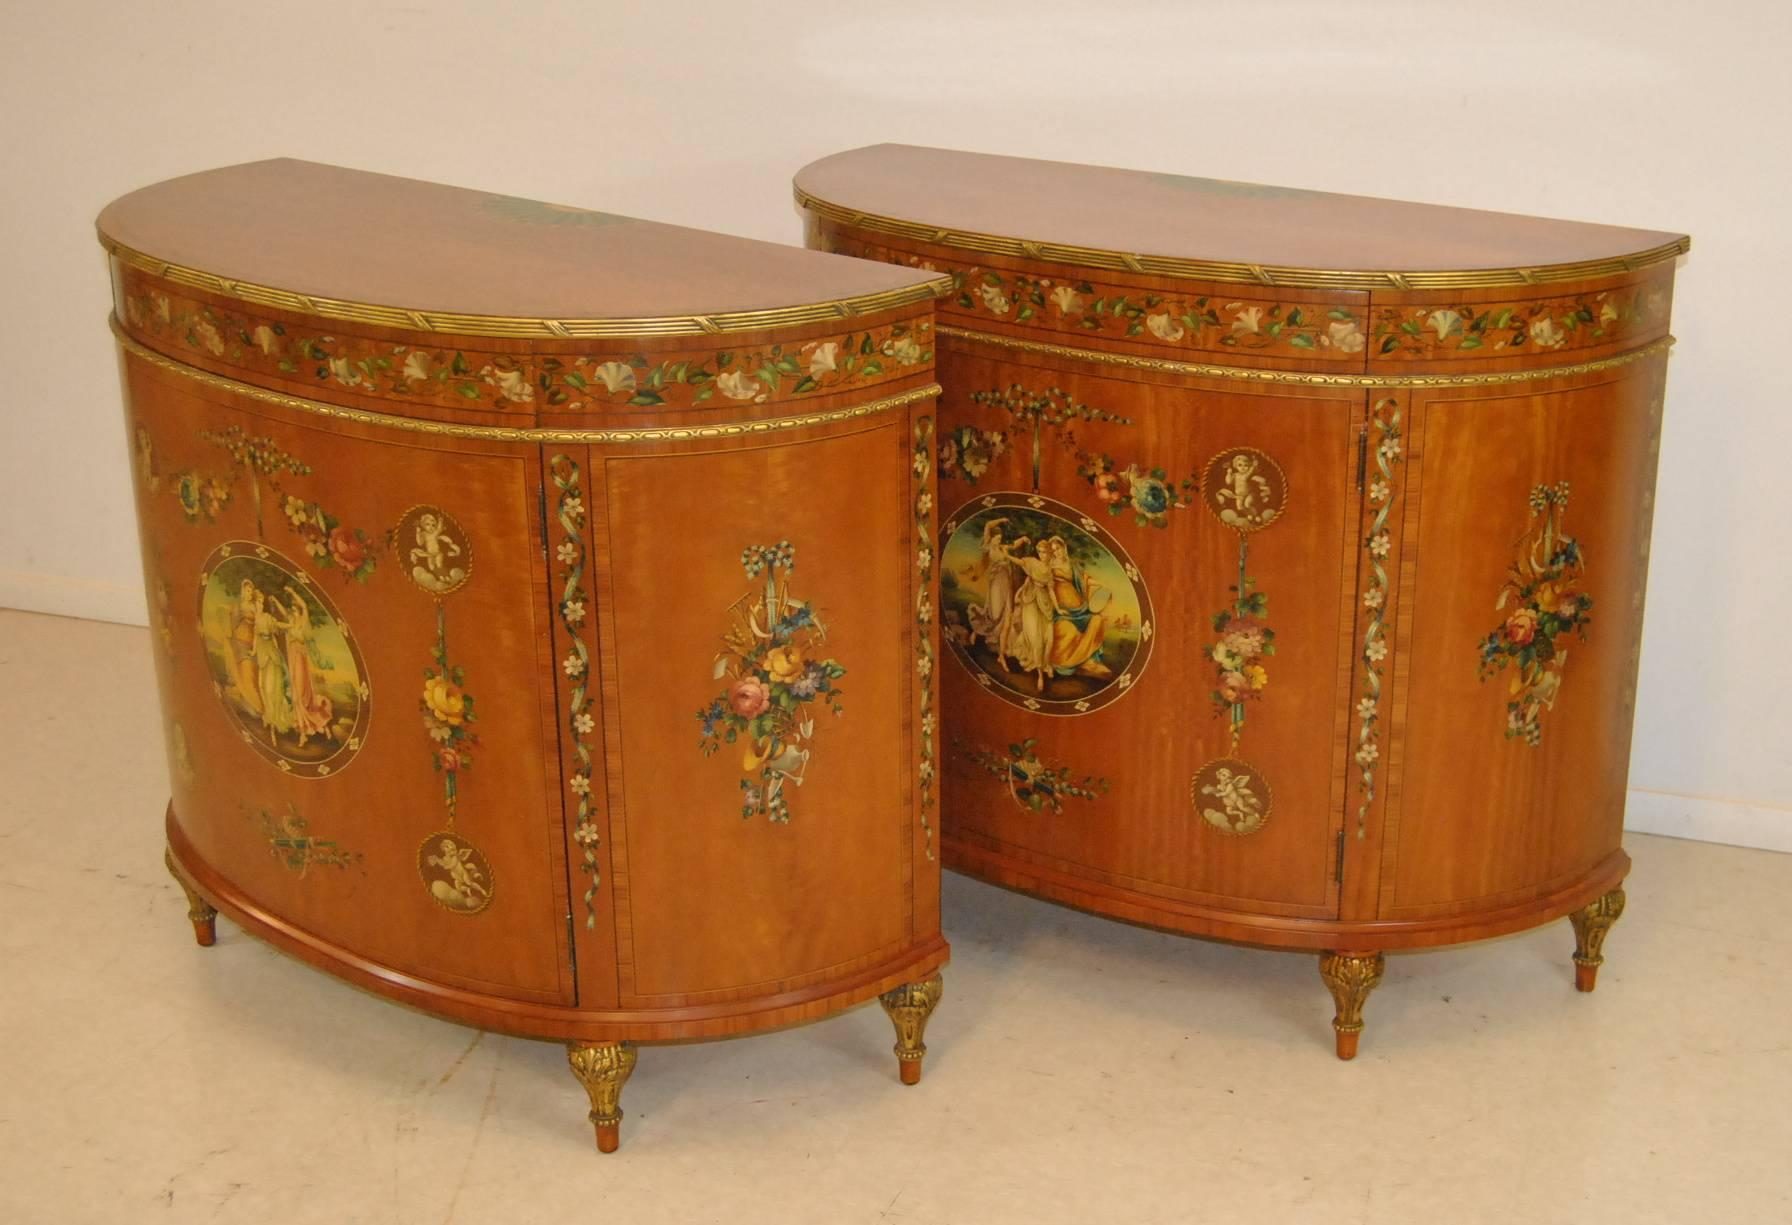 Incroyable A Gorgeous Pair Of Satinwood French Adam Style Commodes By Irwin Furniture,  Circa 1937.